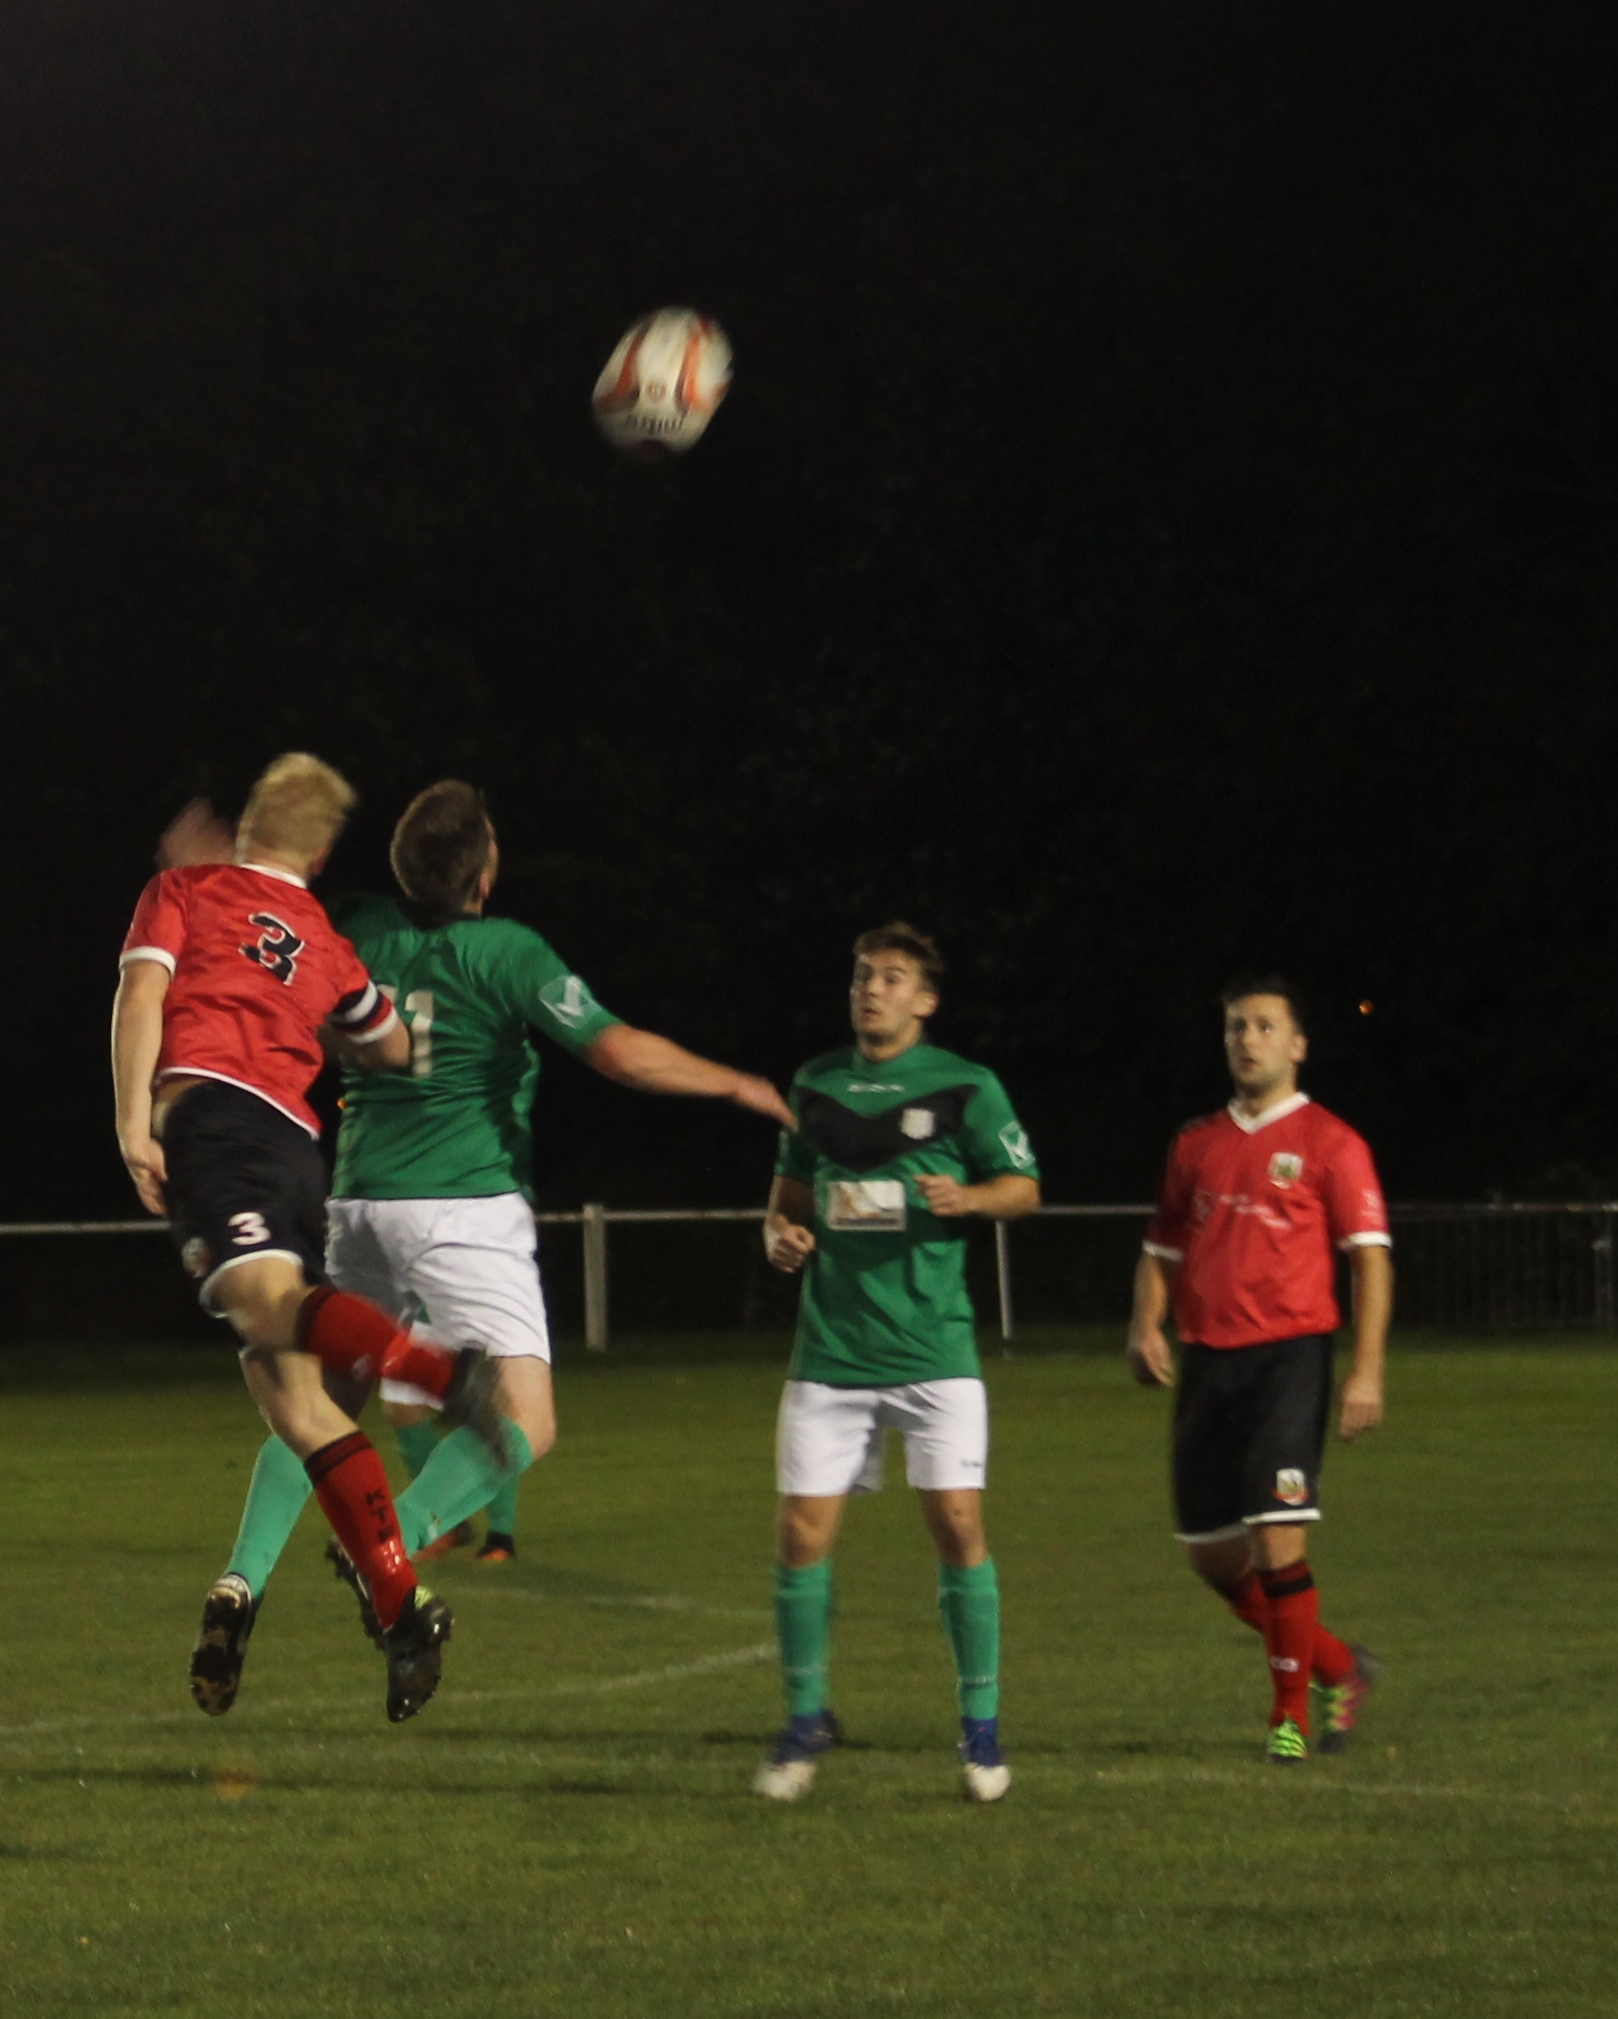 Will Lenehan and Cameron Hill contesting a header.